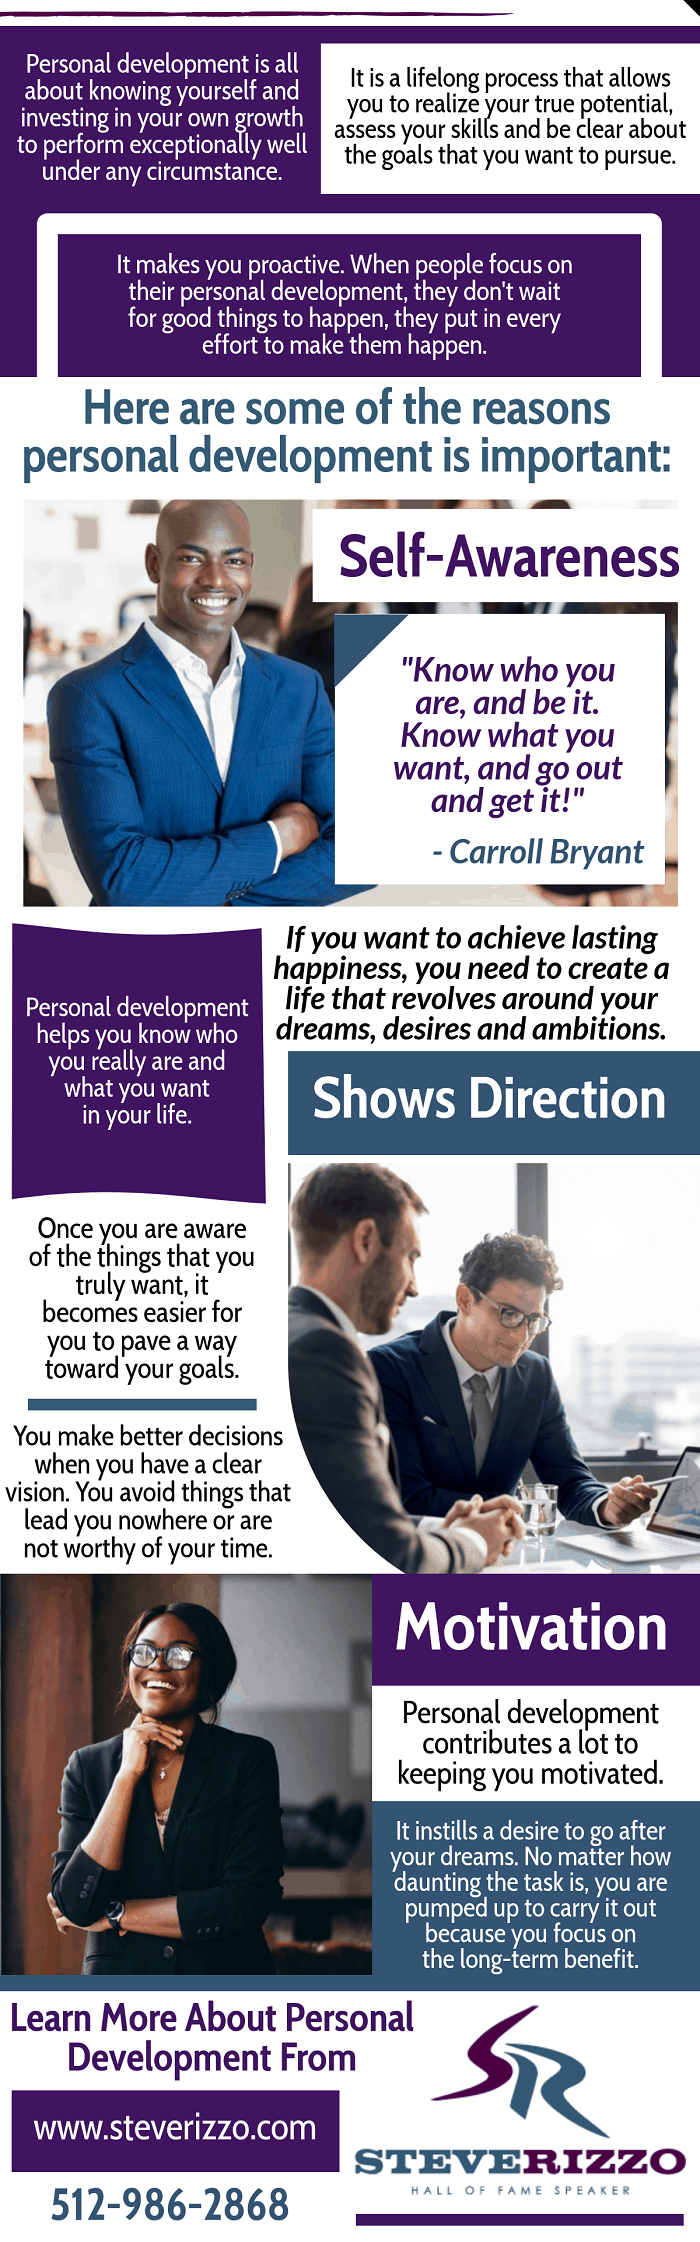 Personal Development - Why is it so Important?